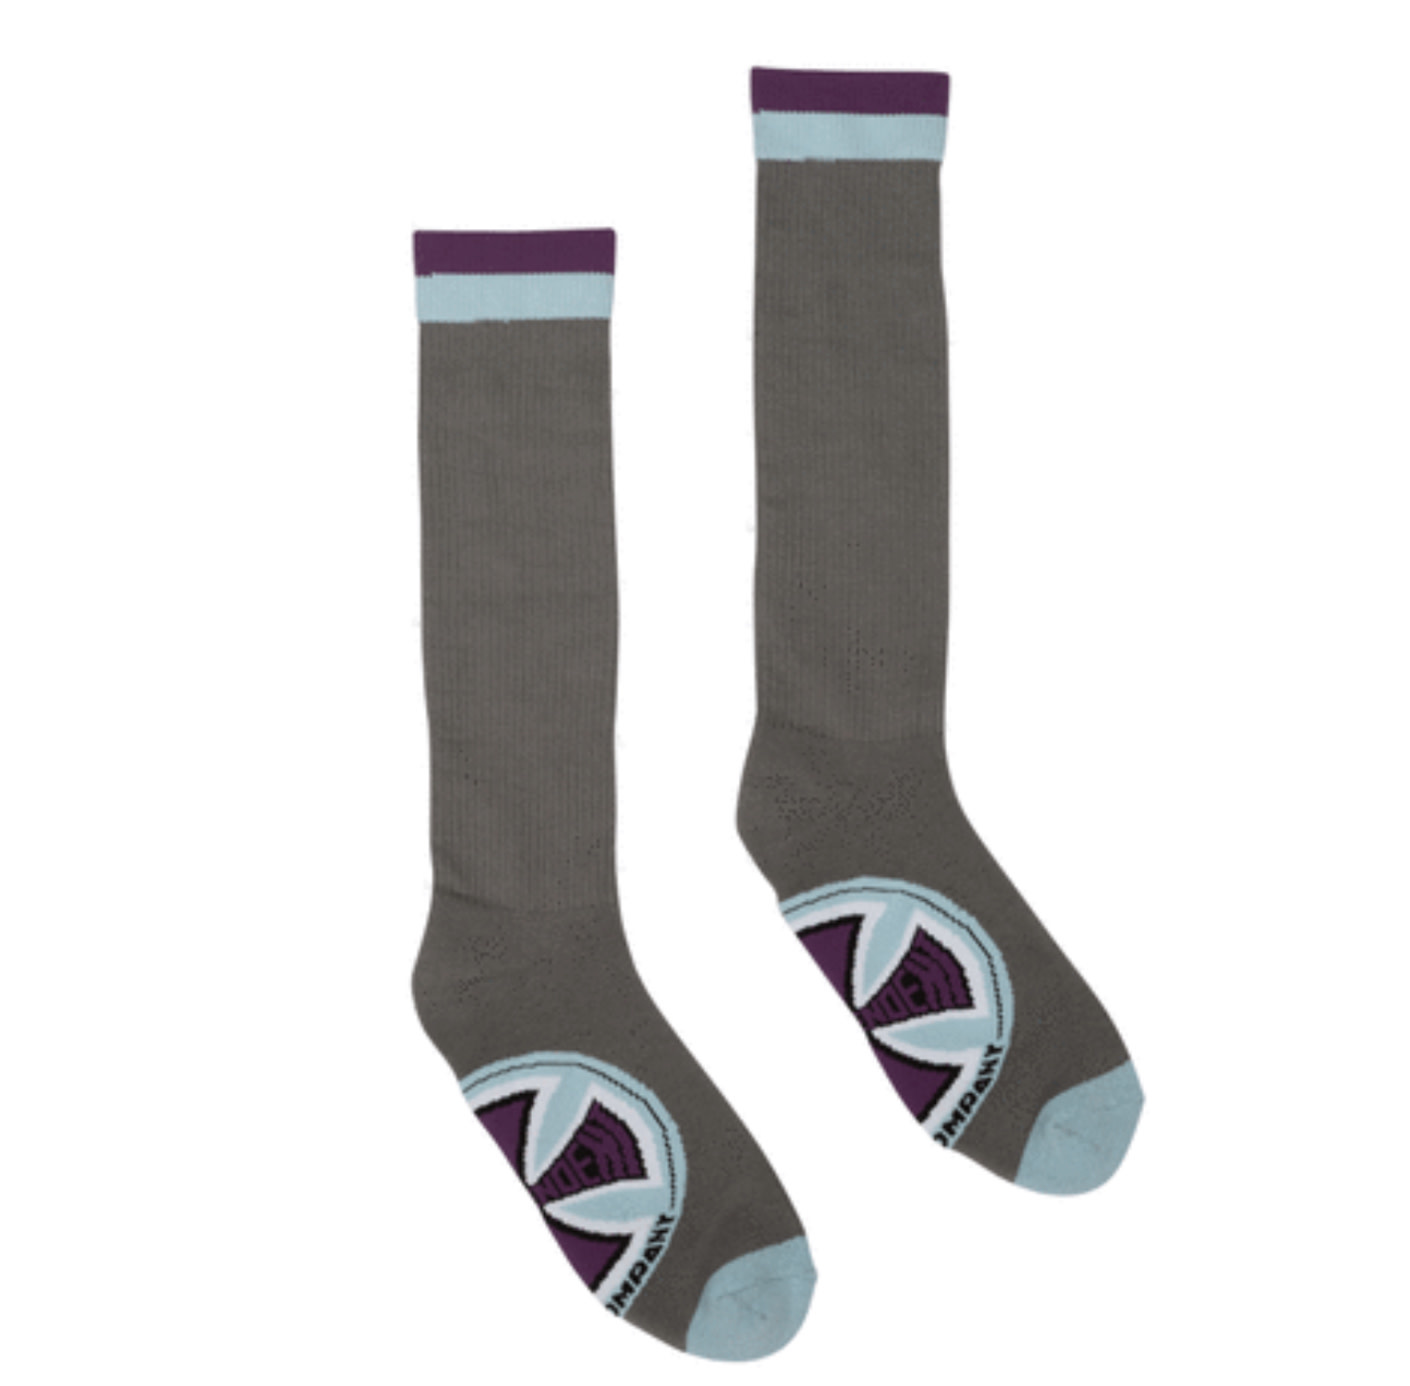 Independent Independent - Chroma Tall Charcoal w/Powder Blue